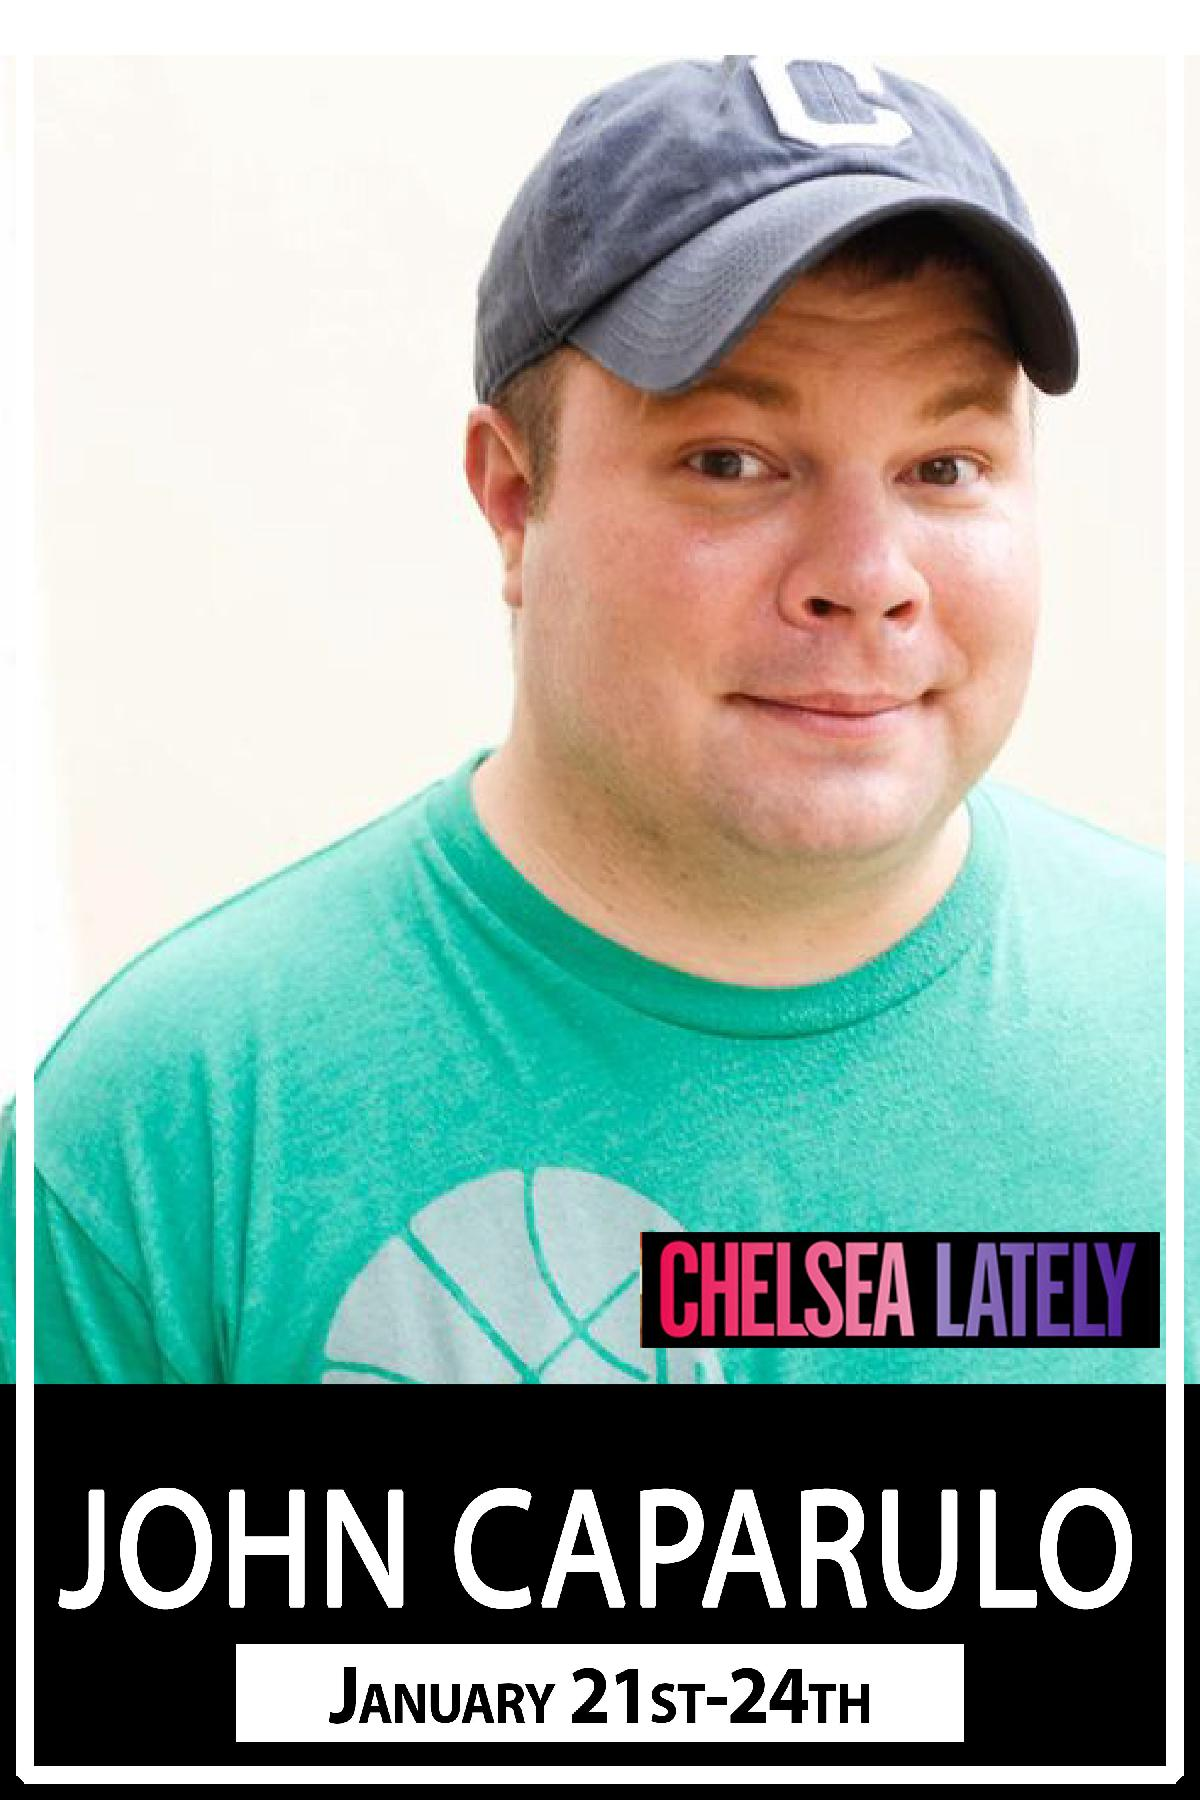 John Caparulo seen on Chelsea Lately and much much more live at Zanies Comedy Club January 21-24, 2016